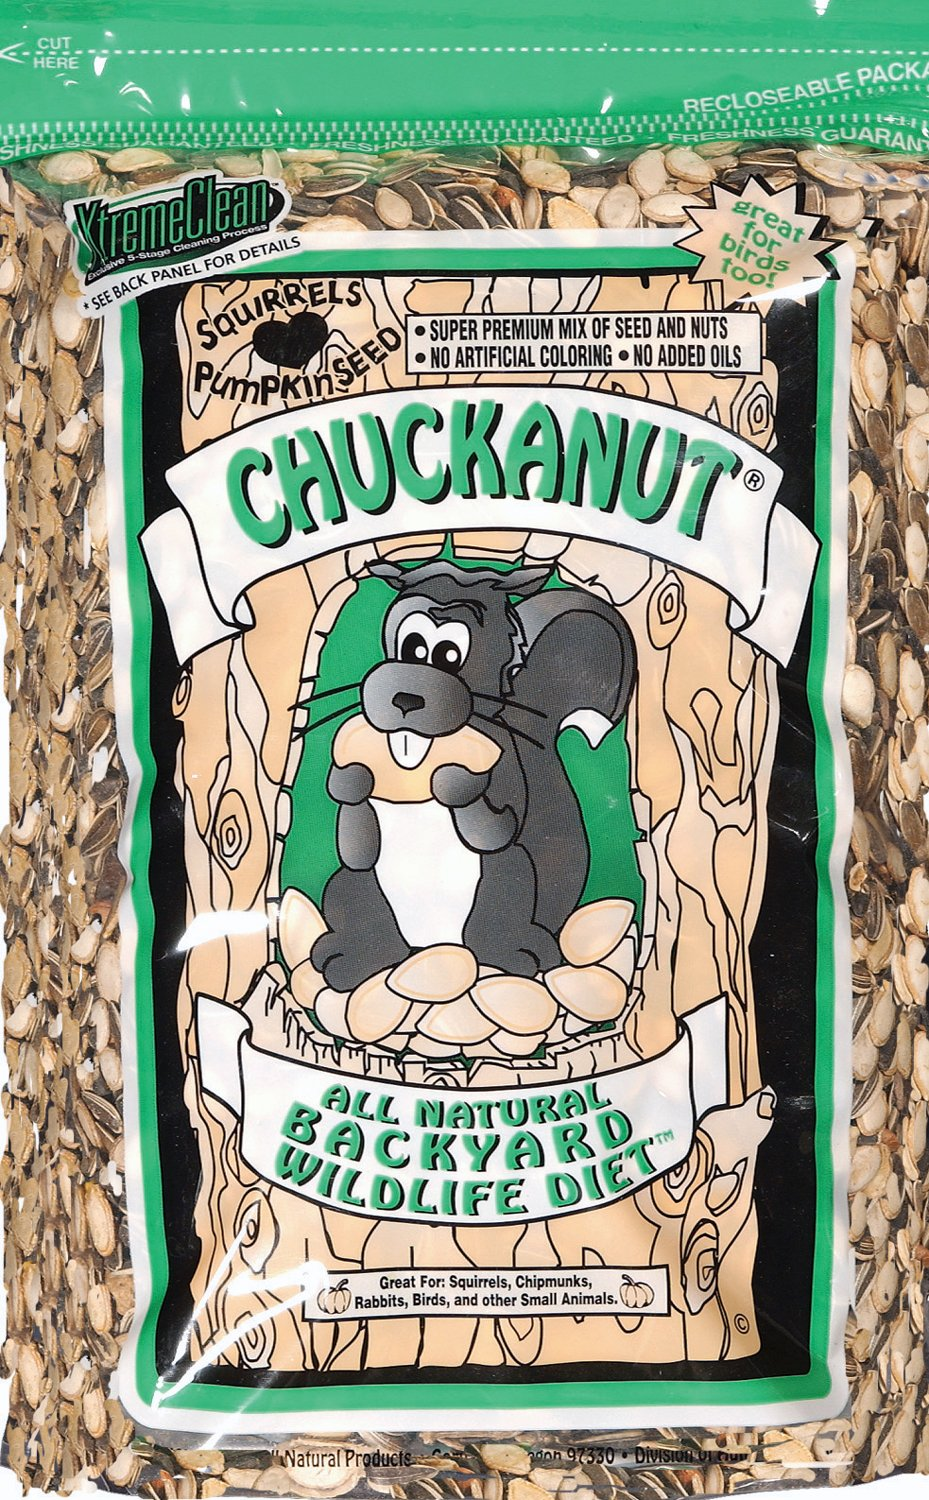 Chuck-A-Nut CHUCKANUT Products VSD-012027 Backyard Wildlife Diet by Chuck-A-Nut